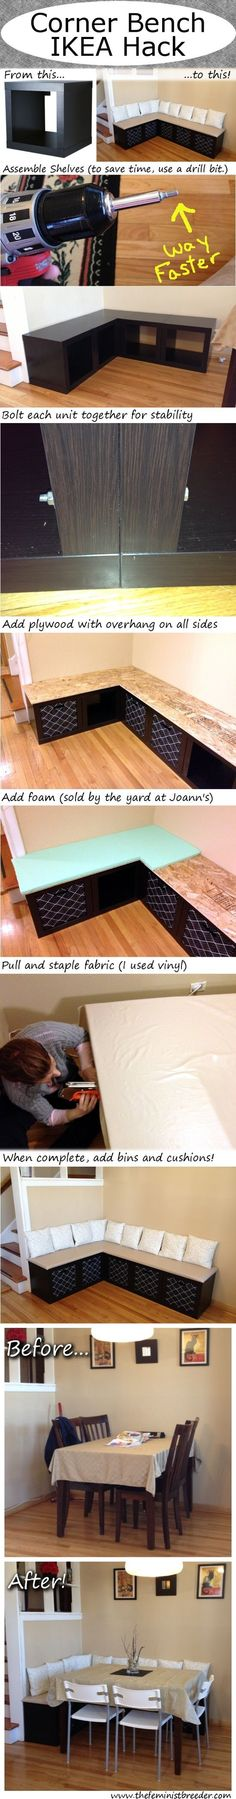 DIY bench seating expedit Ikea hack